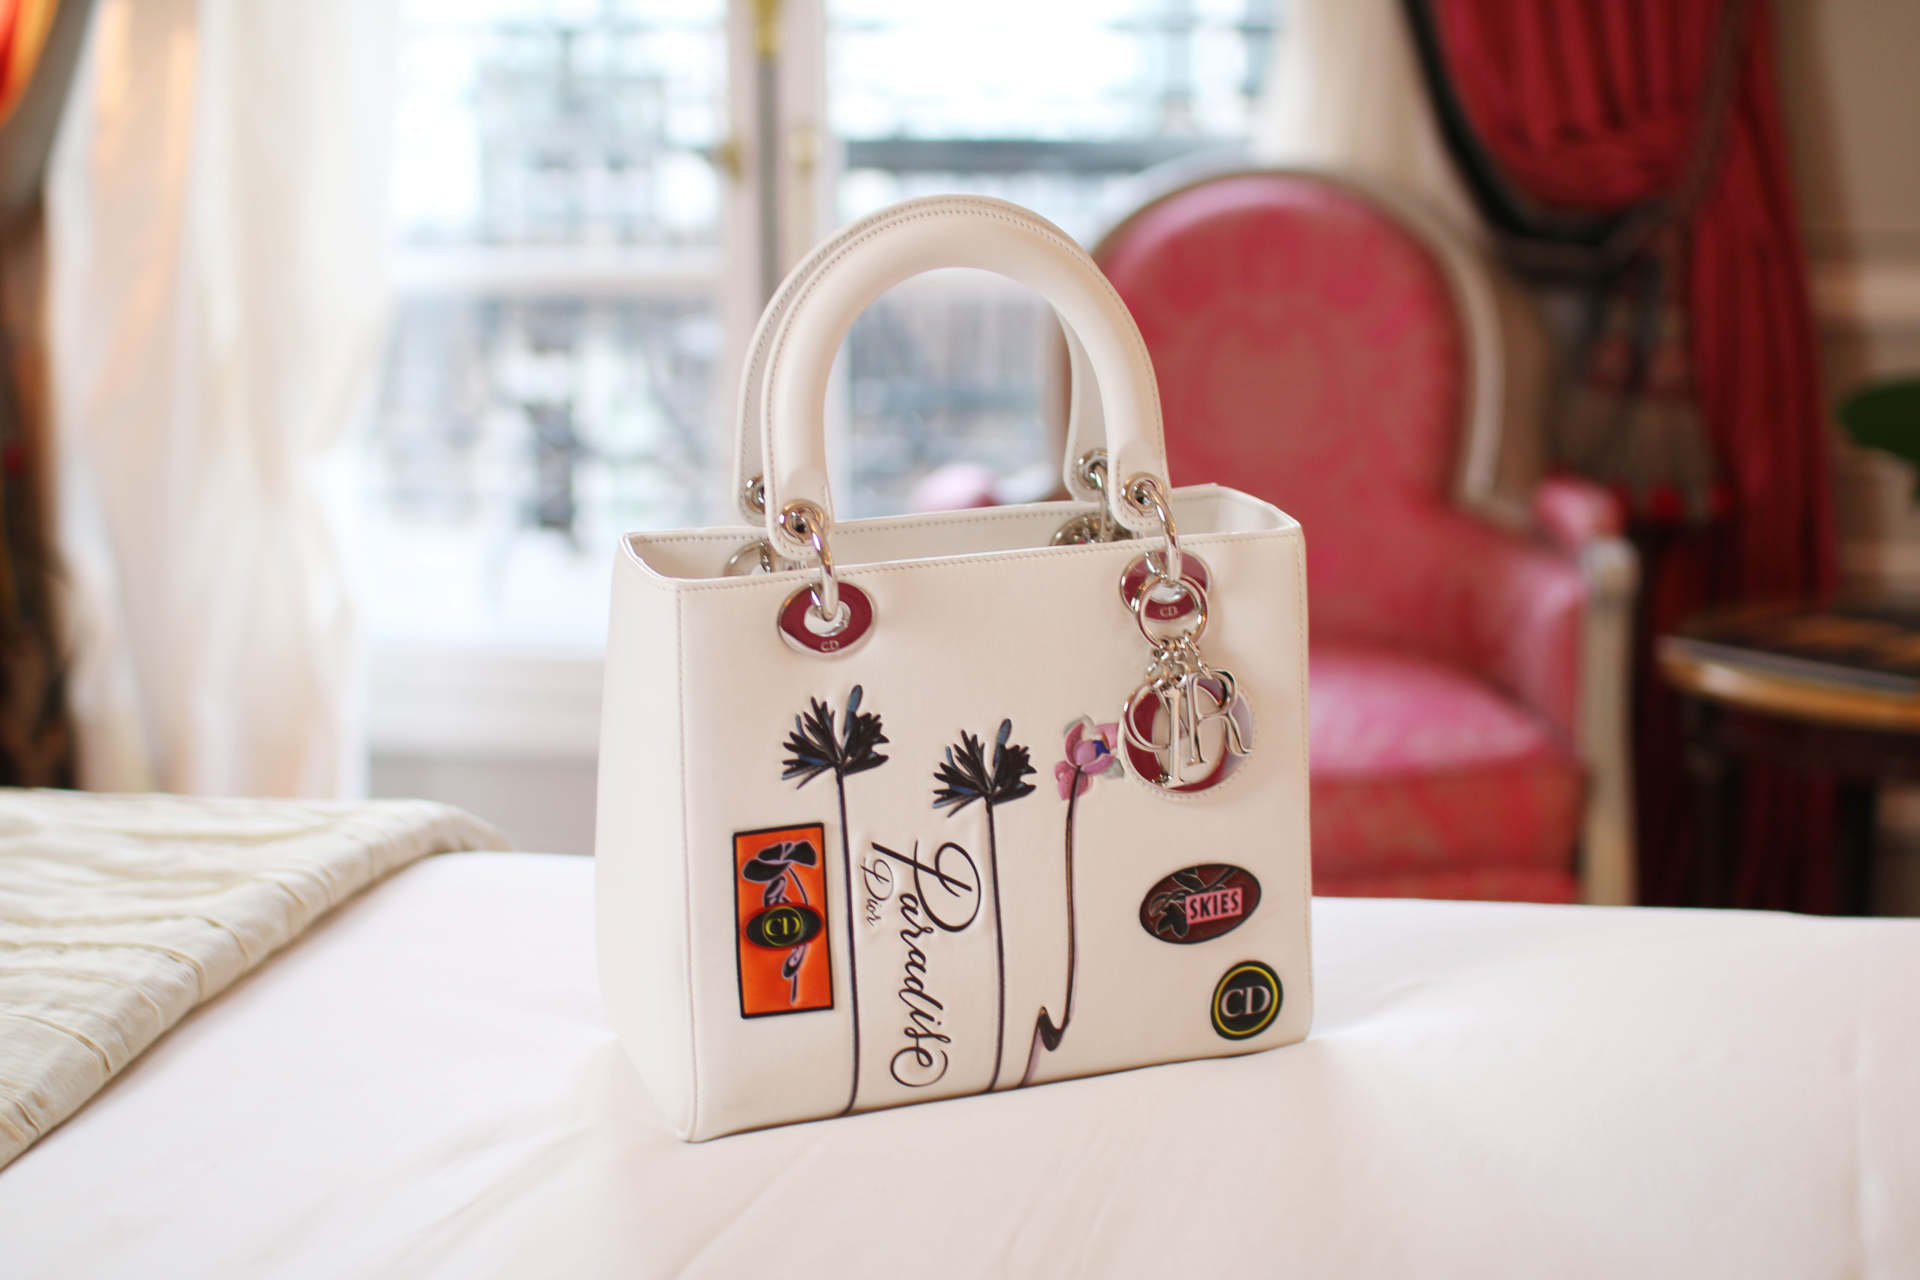 Dior cruise collection bag, poison girl fragrance and poison girl party in paris, Inthefrow